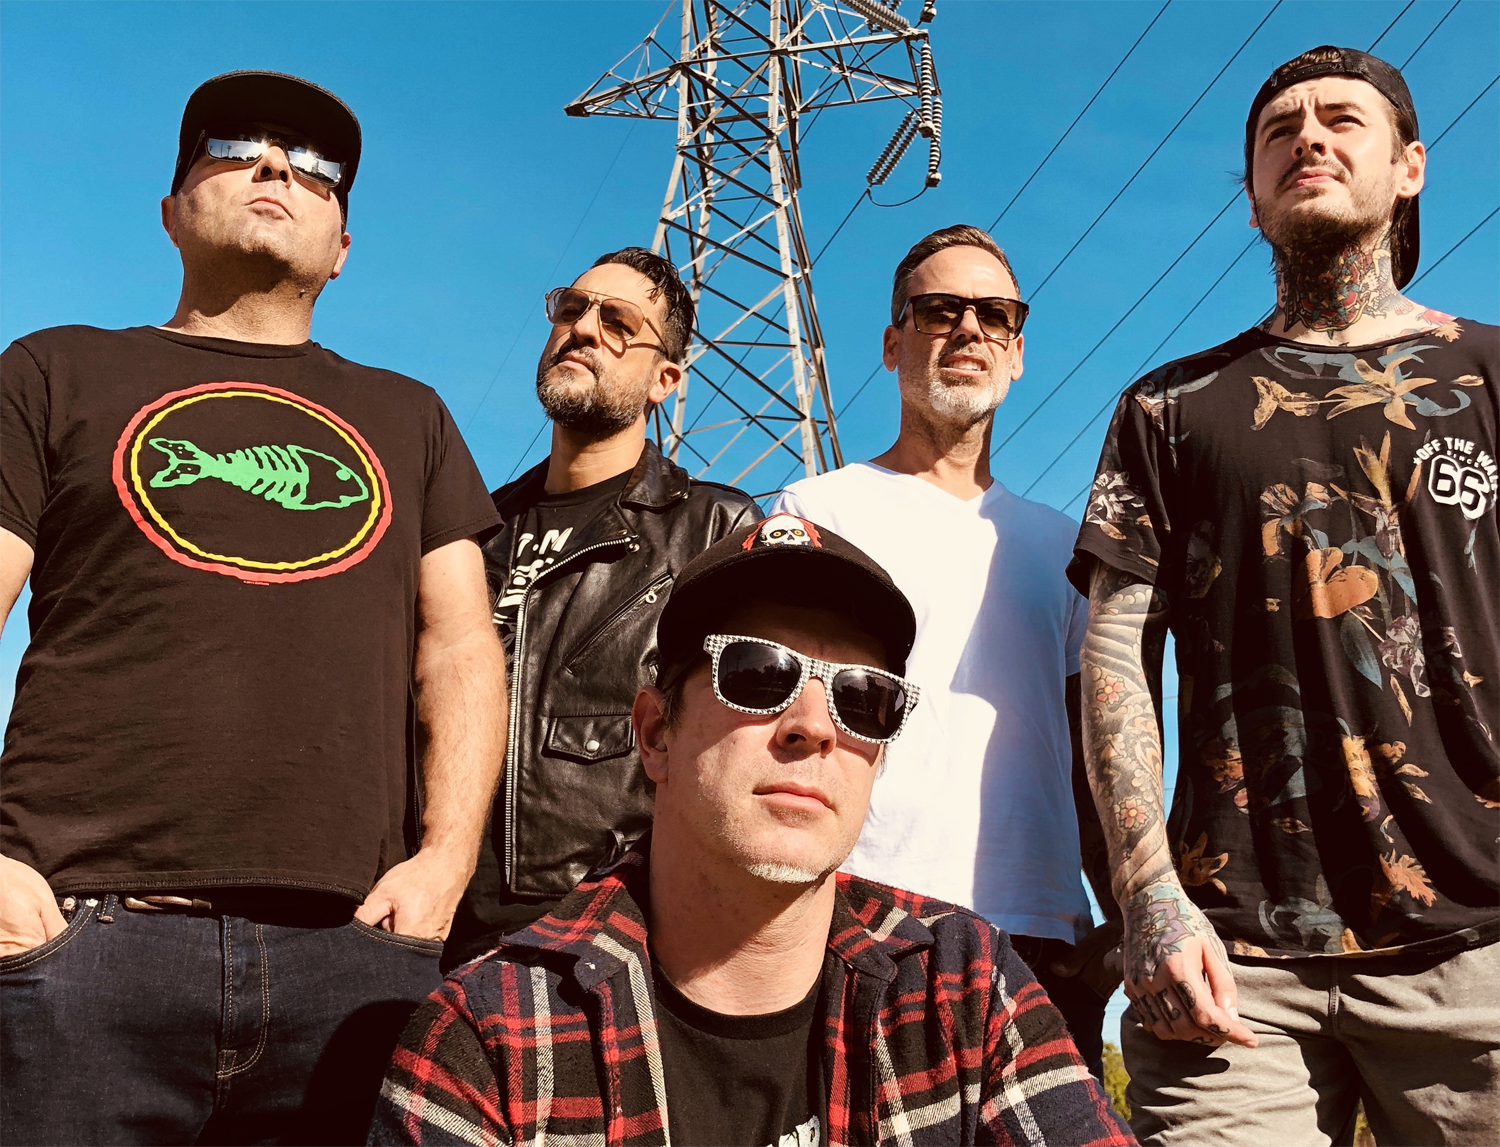 PREMIERE: Strung Out trade aggression for reflection on 'Black Out The Sky'